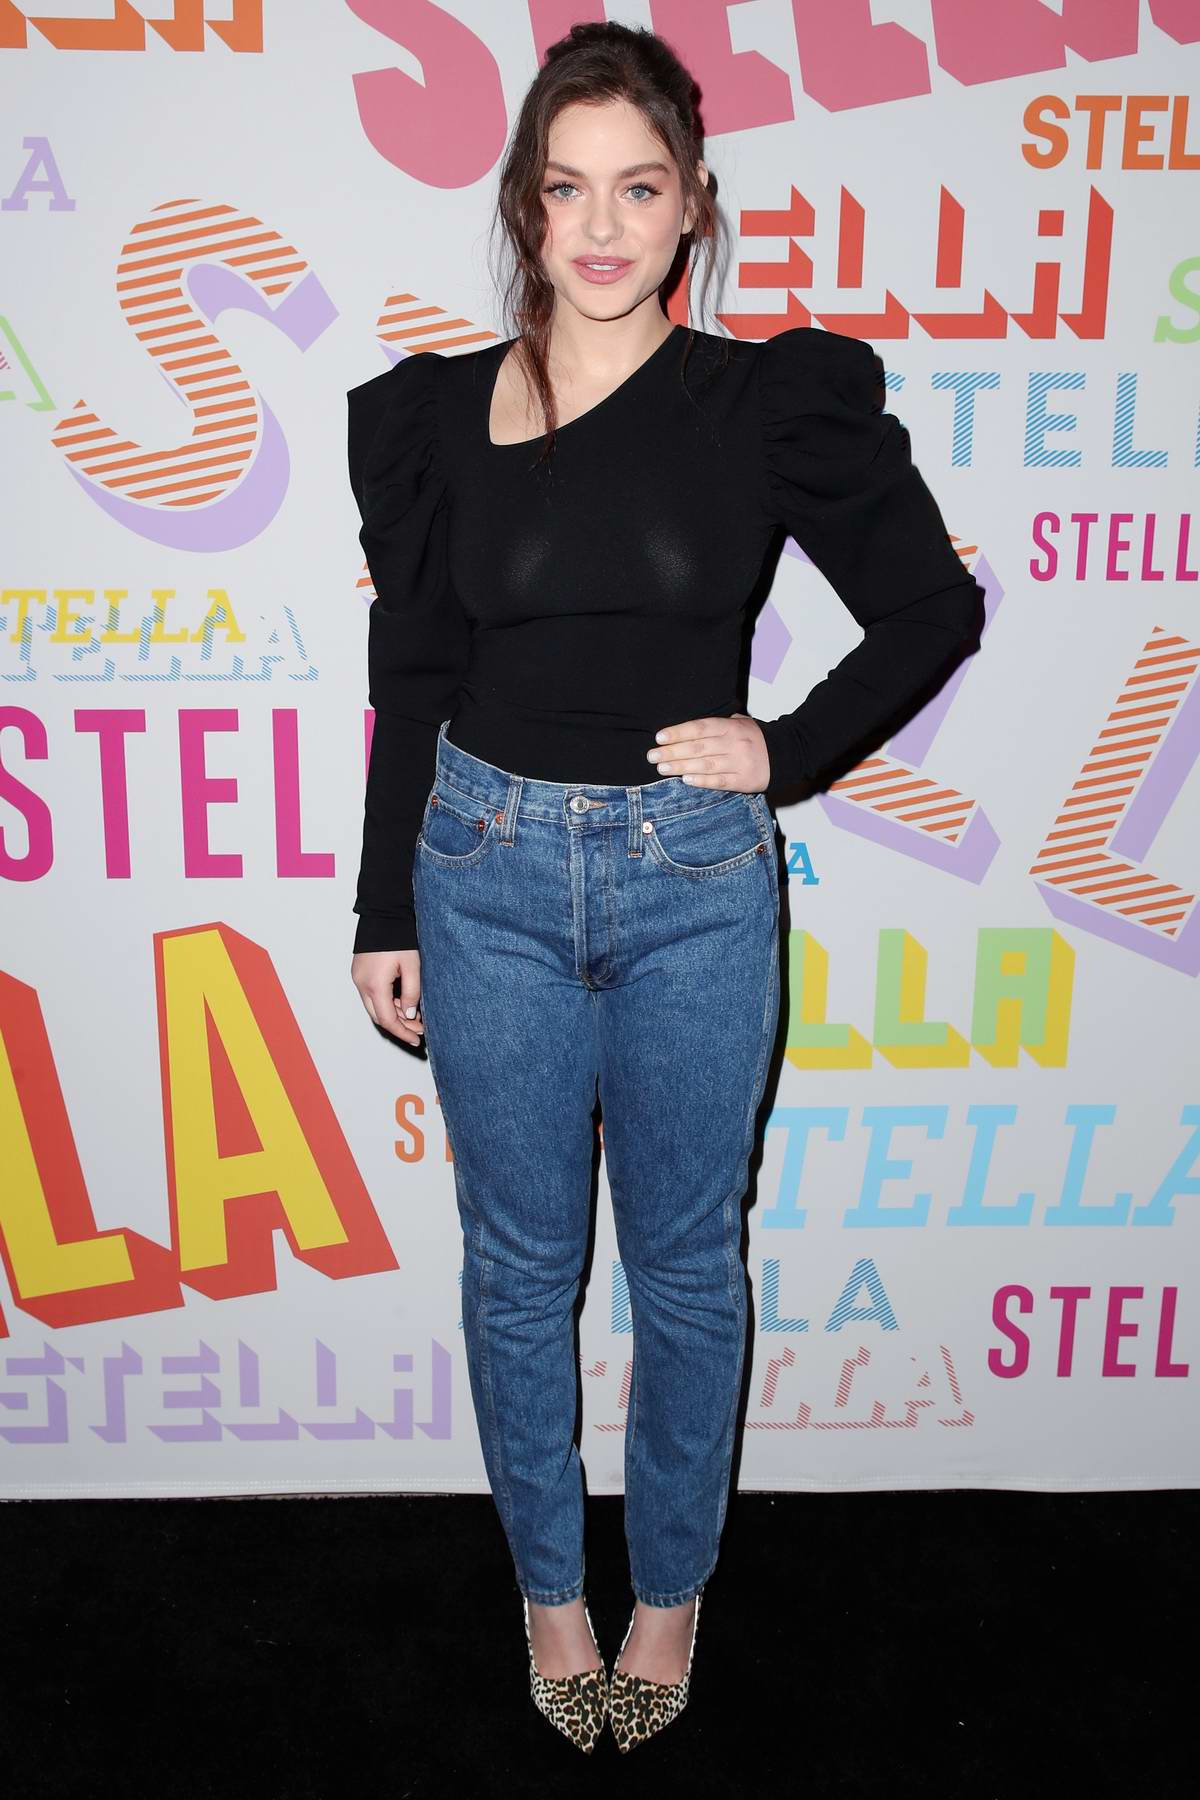 Odeya Rush attends Stella McCartney's Autumn 2018 Collection Launch in Los Angeles